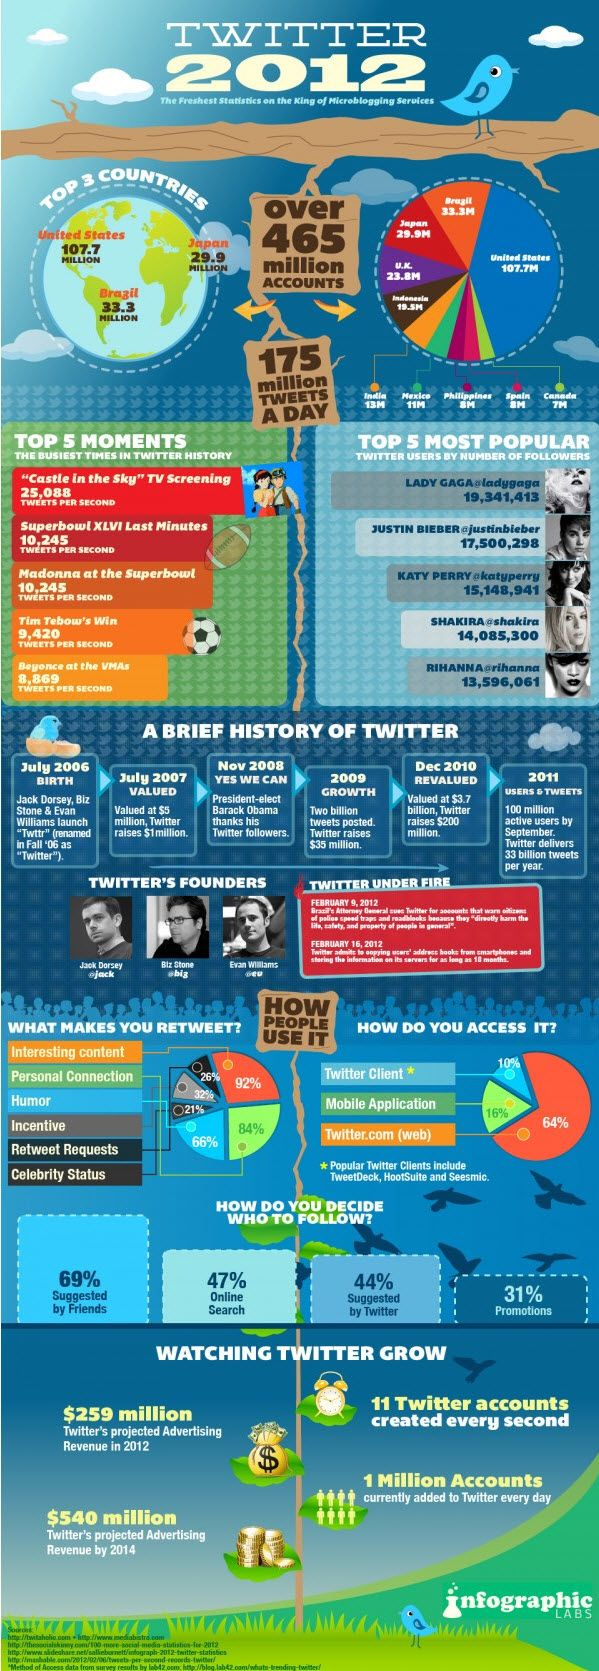 Twitter Infographic 2012